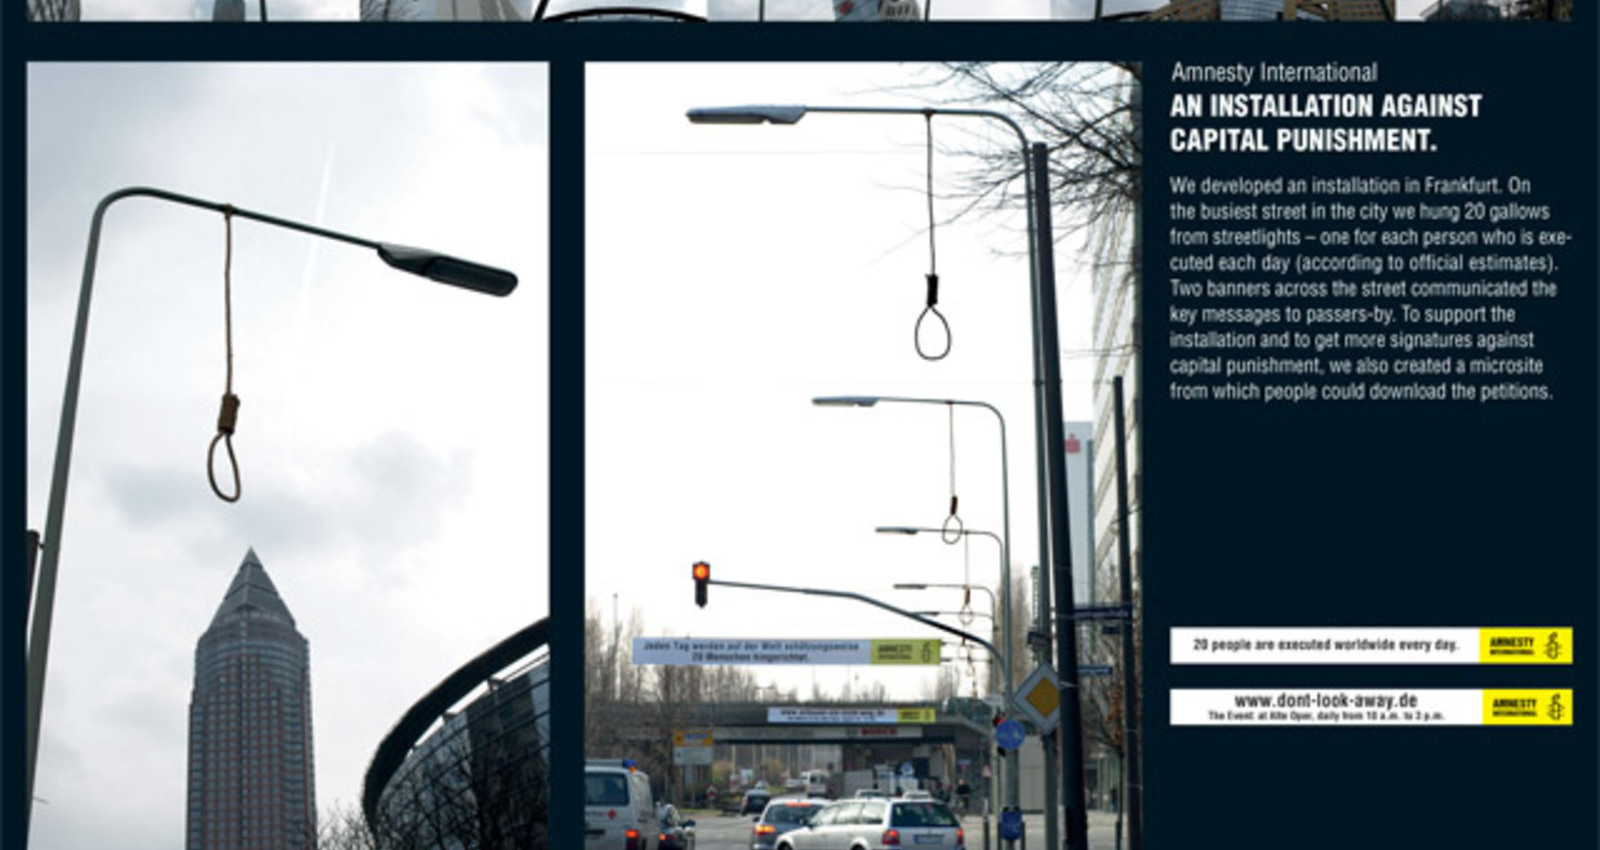 Amnesty International Gallows